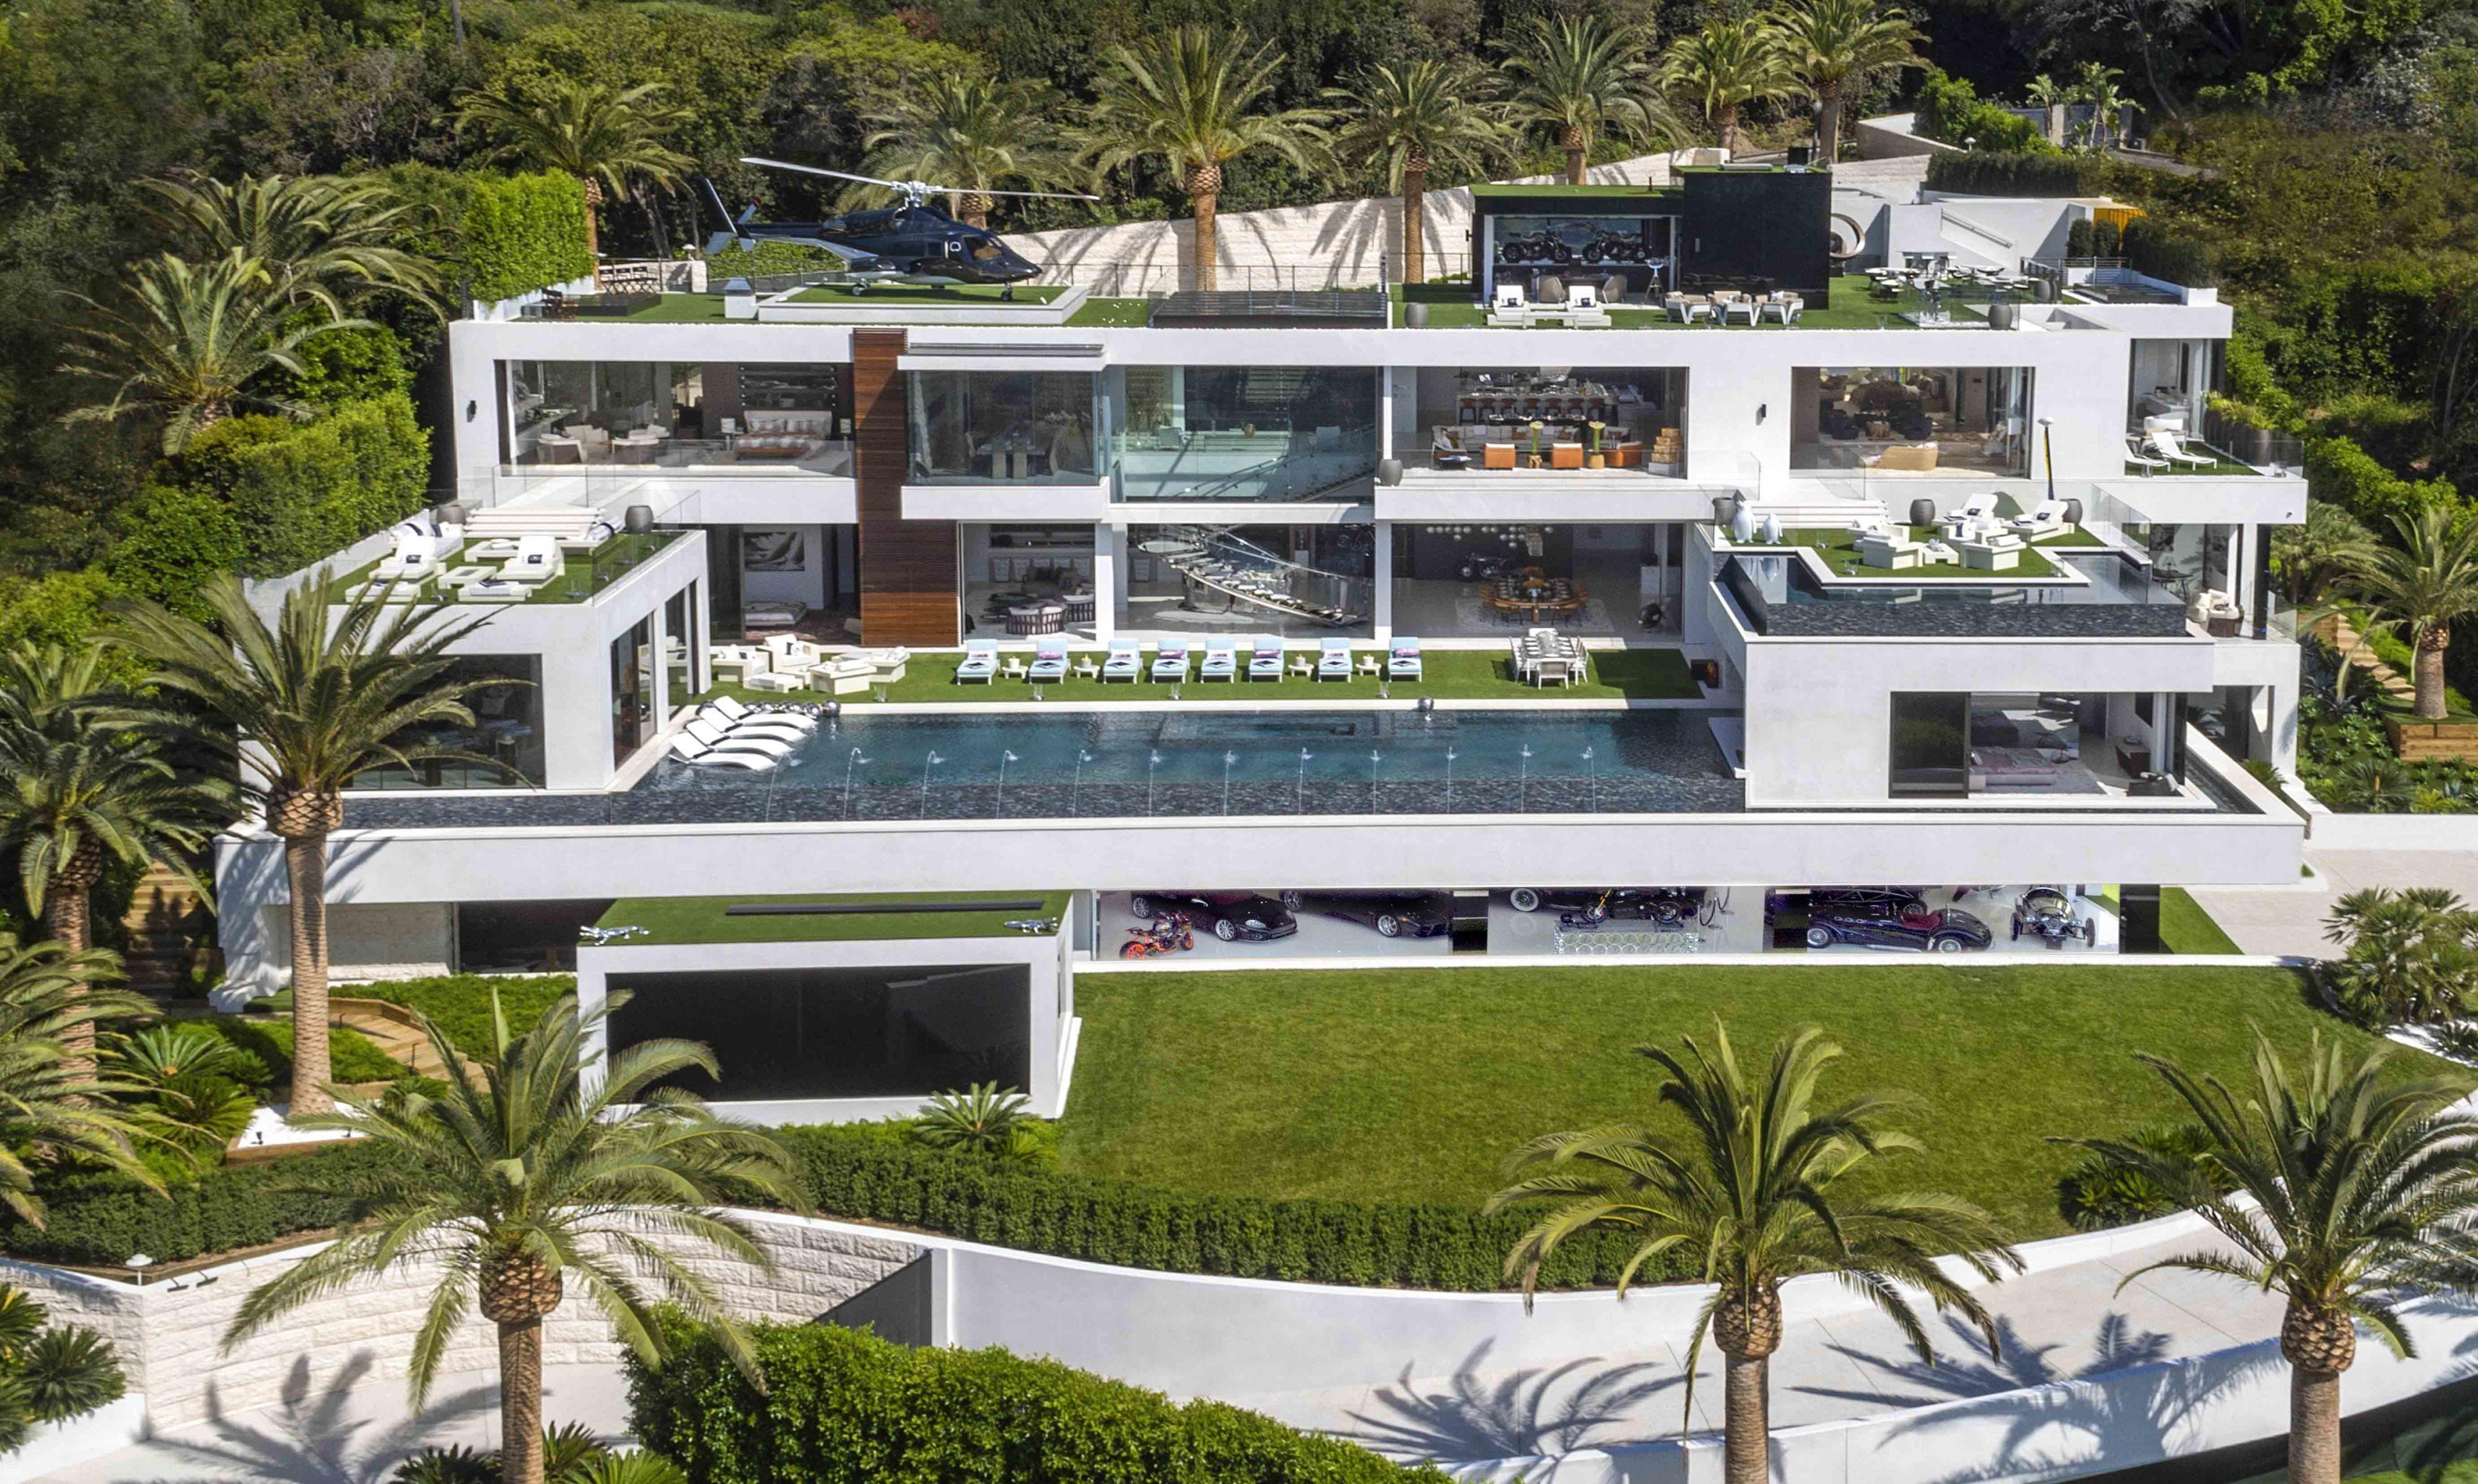 The Most Expensive House in the United States Costs $250 Million